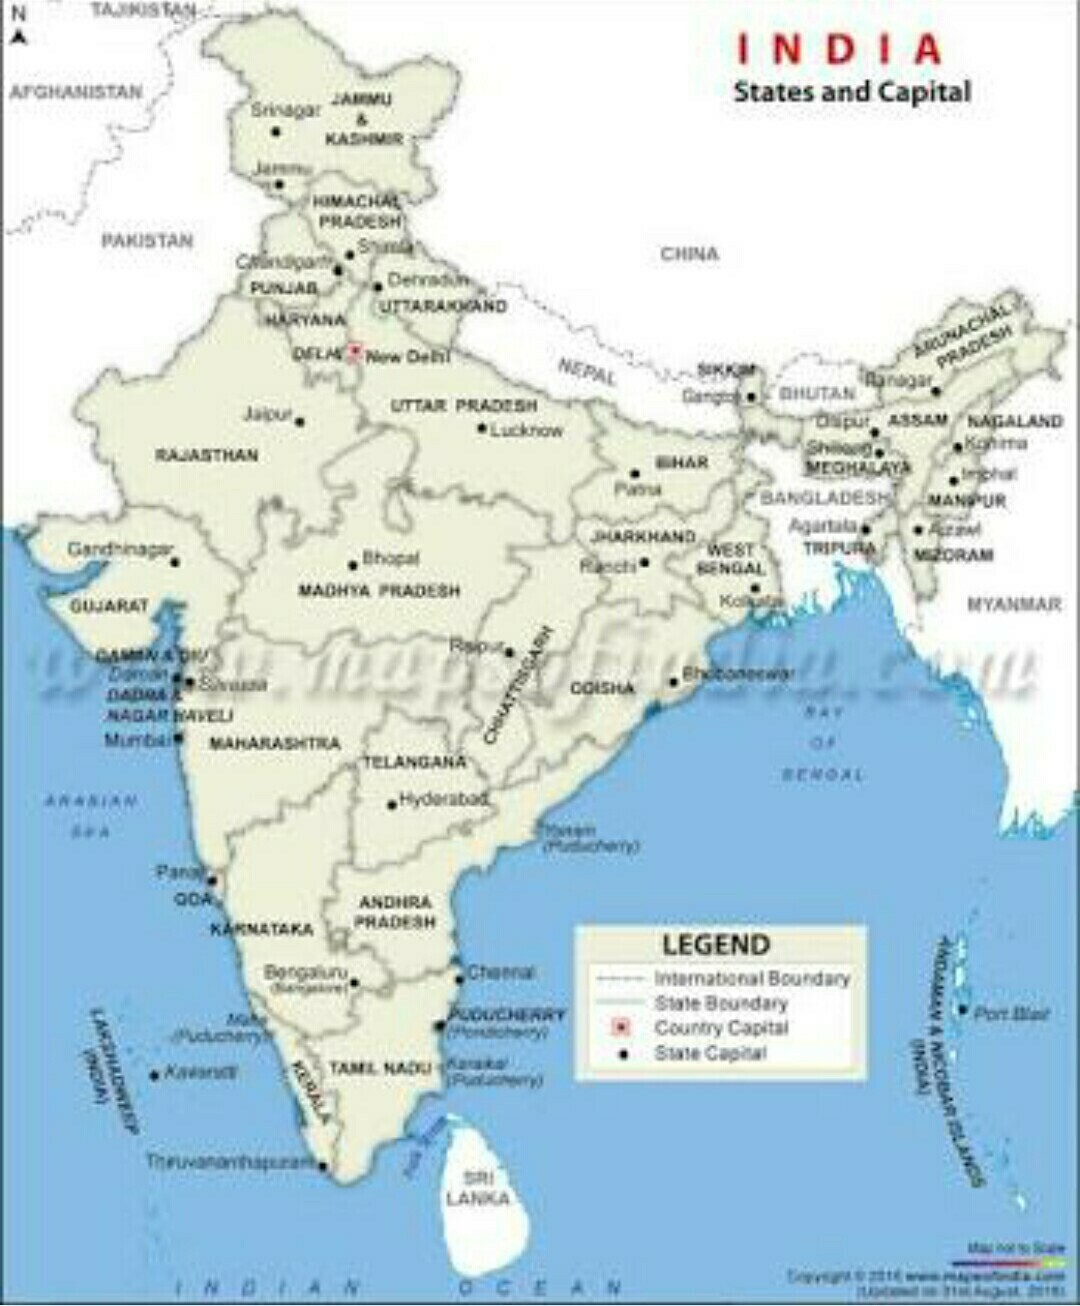 maps of states & capitals of India - Brainly.in